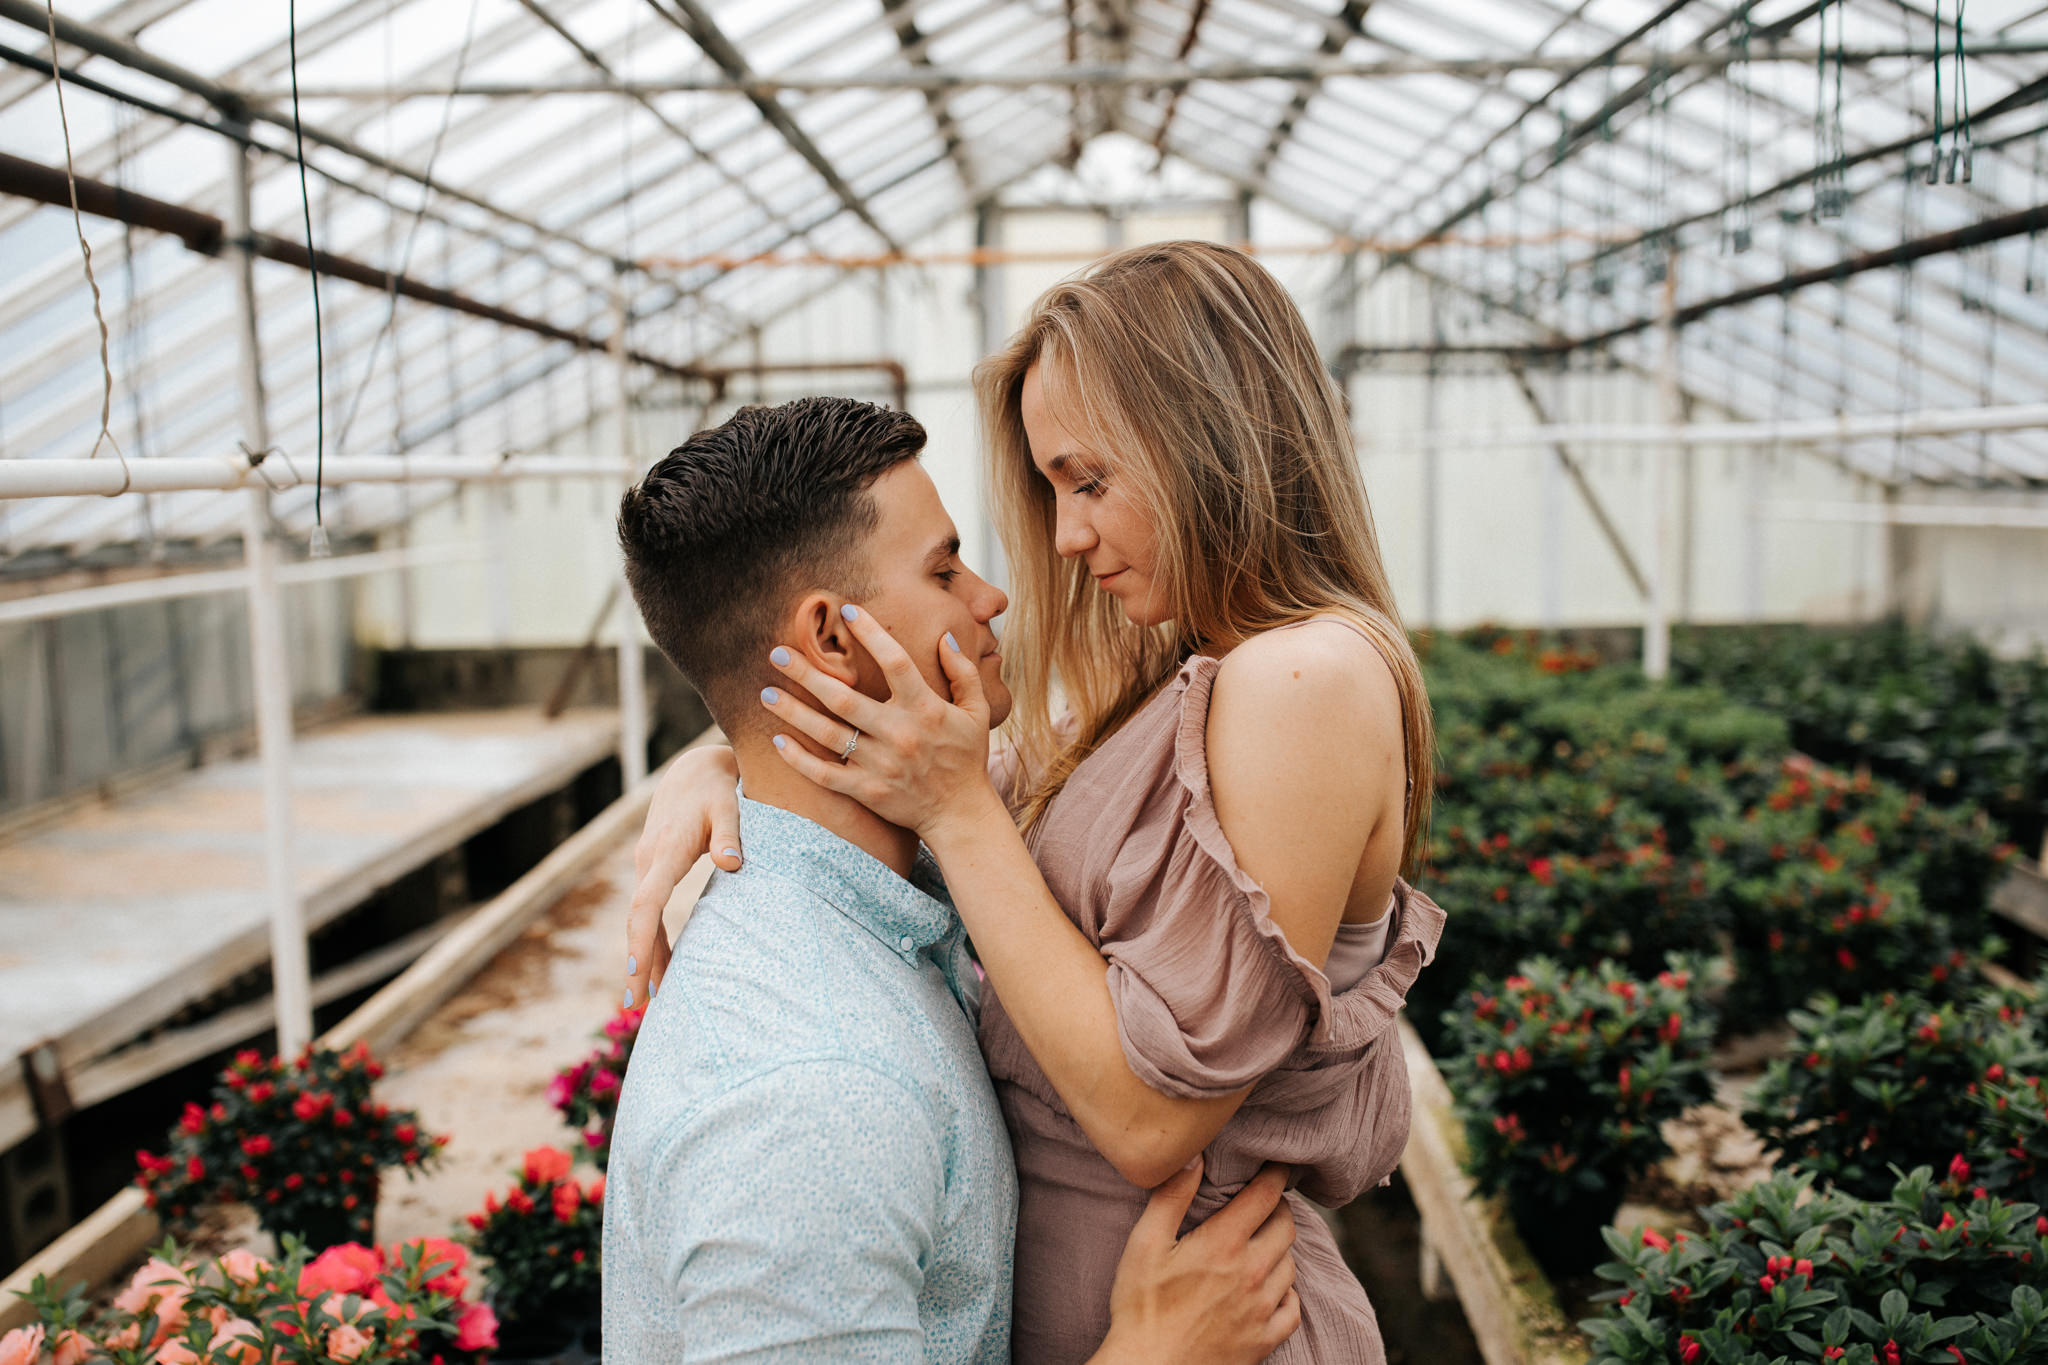 memphis-engagement-photographer-thewarmtharoundyou-greenhouse-engagement-pictures (84 of 118).jpg